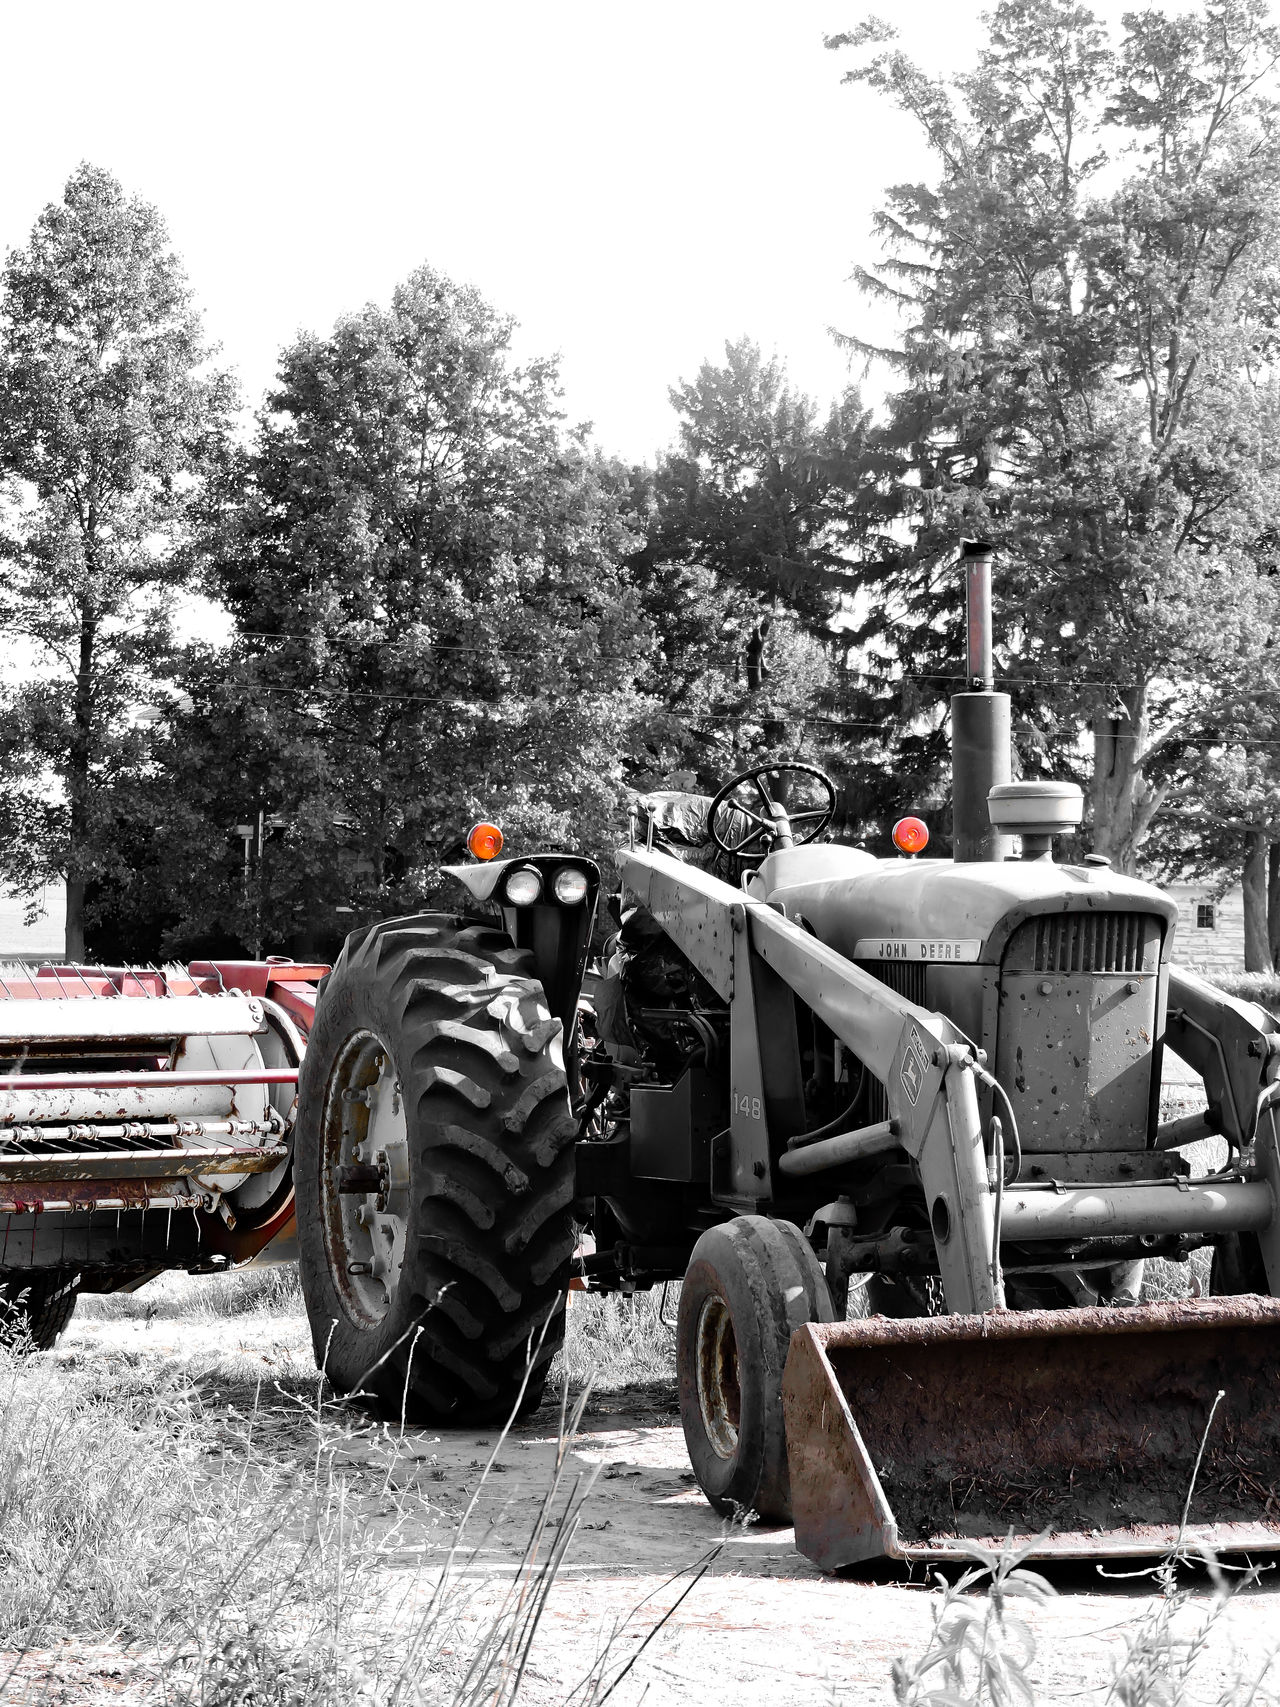 Tractor Haybine Farm Farm Life Country Country Life Orange Beauty Black And White Natures Diversities Tree Outdoor Life Outdoor Photography 2016 EyeEm Awards Milford, IN